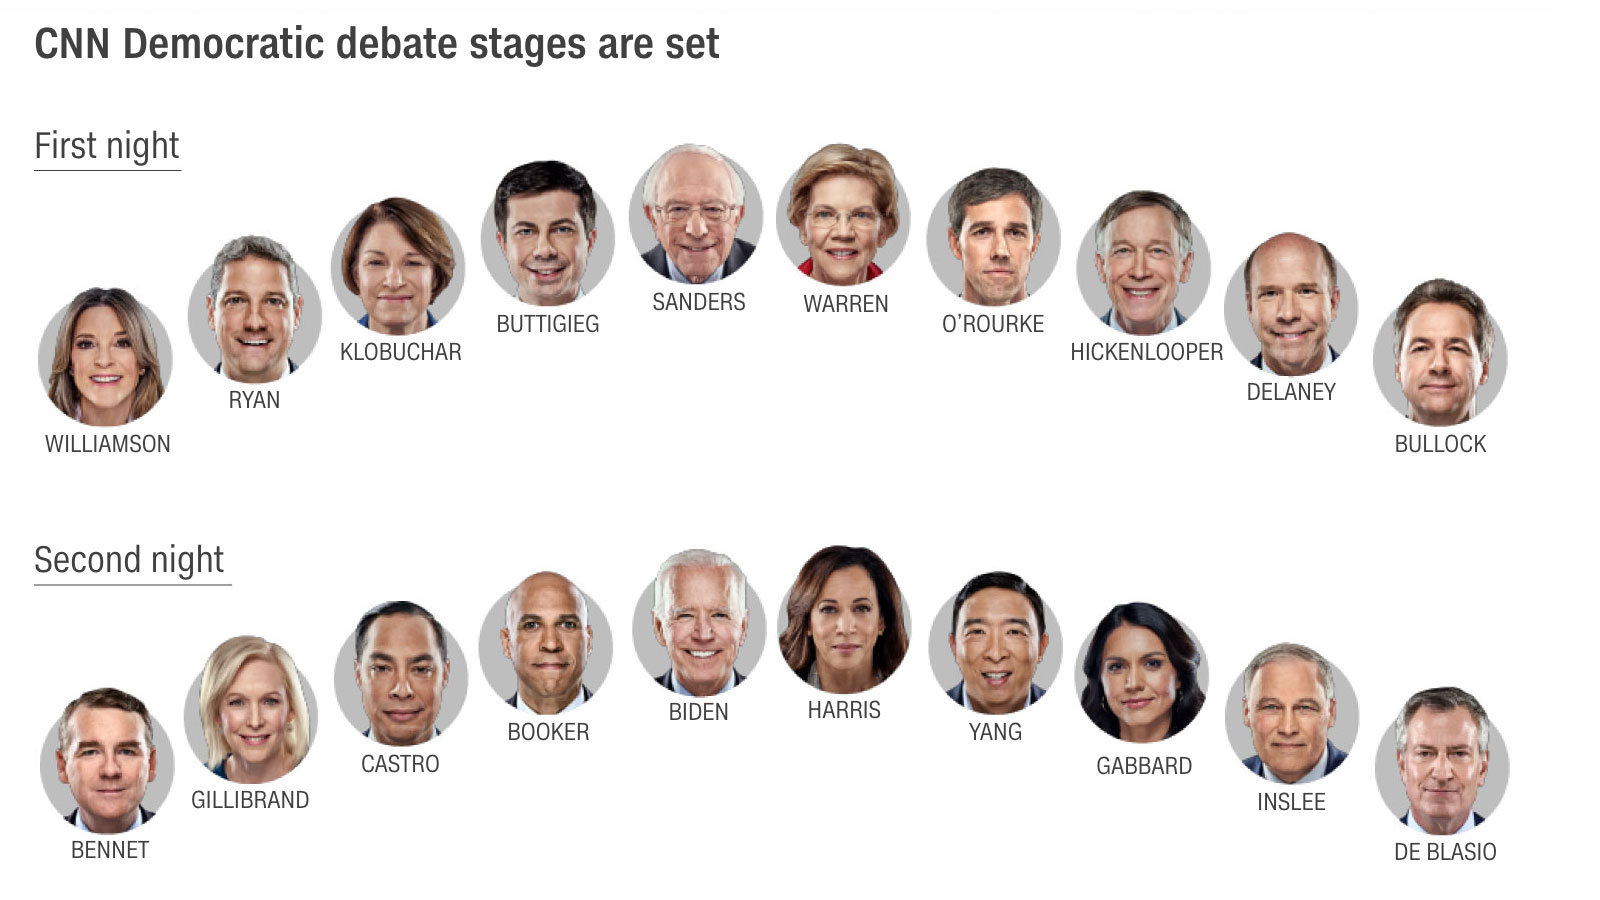 Lineup for July Democratic presidential debates in Detroit revealed